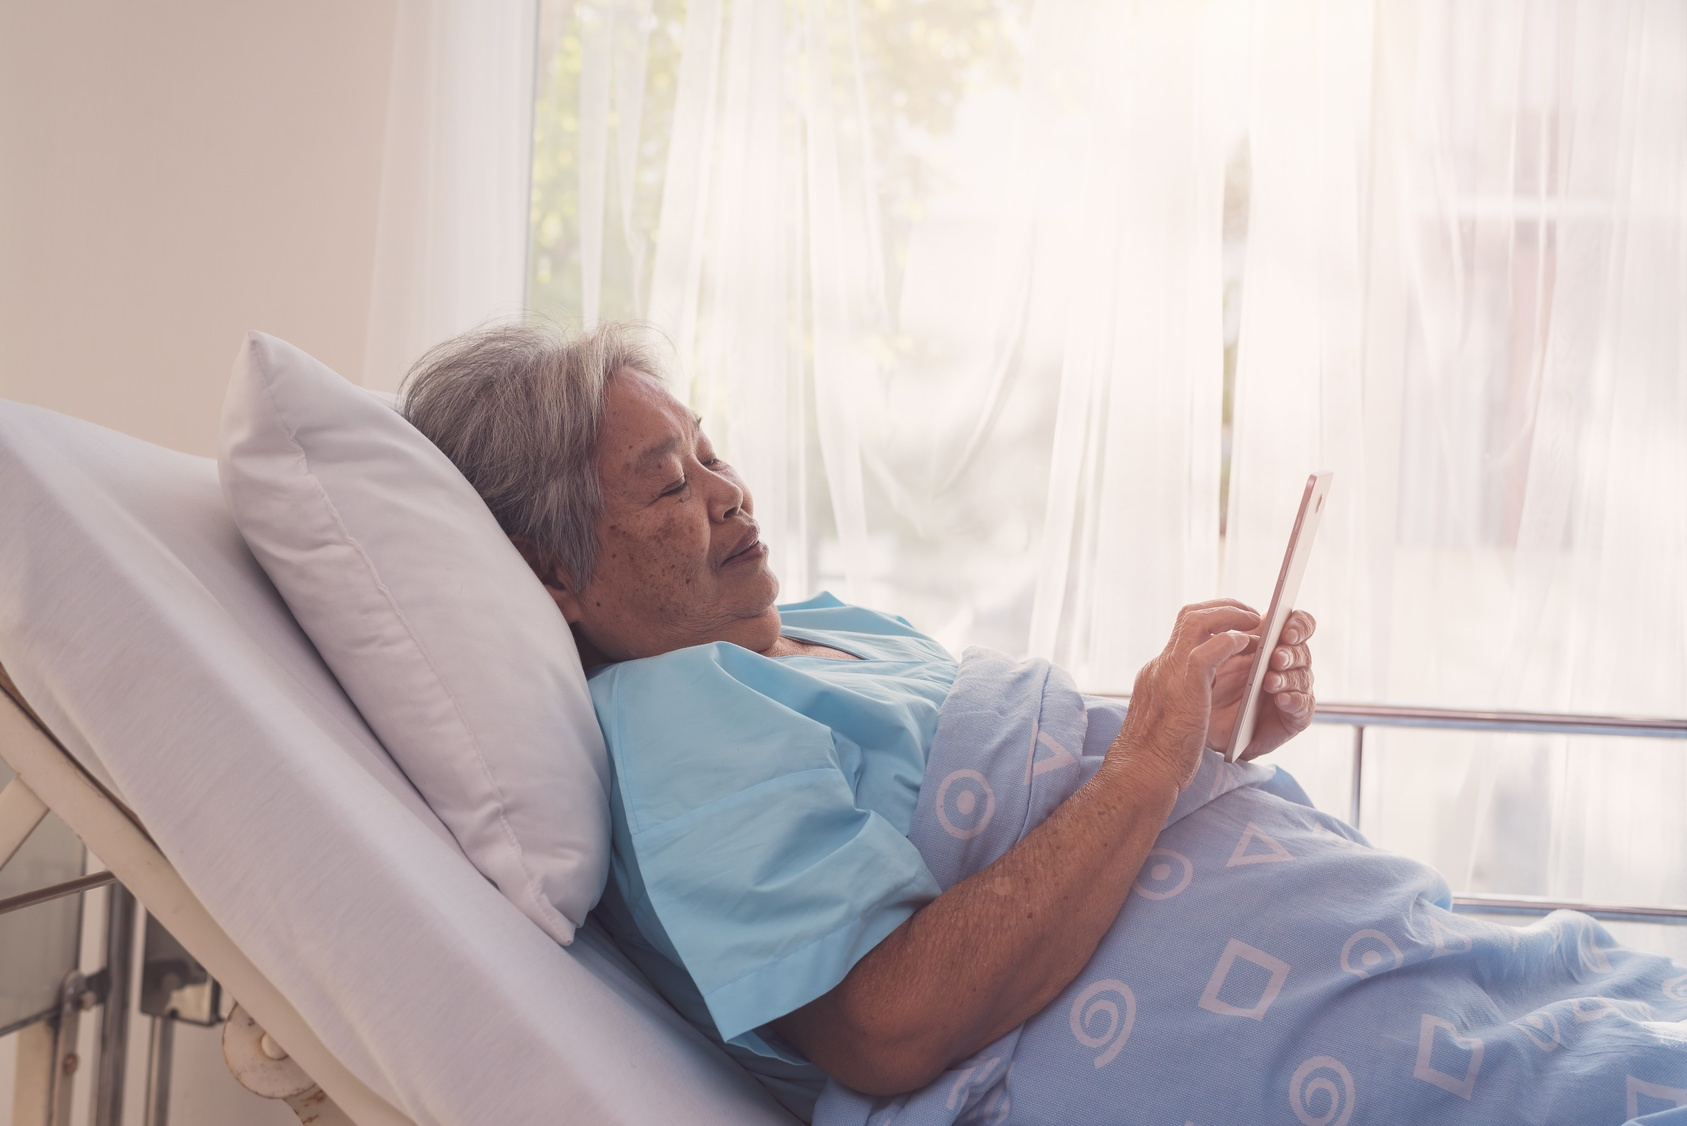 patient-on-phone-hospital